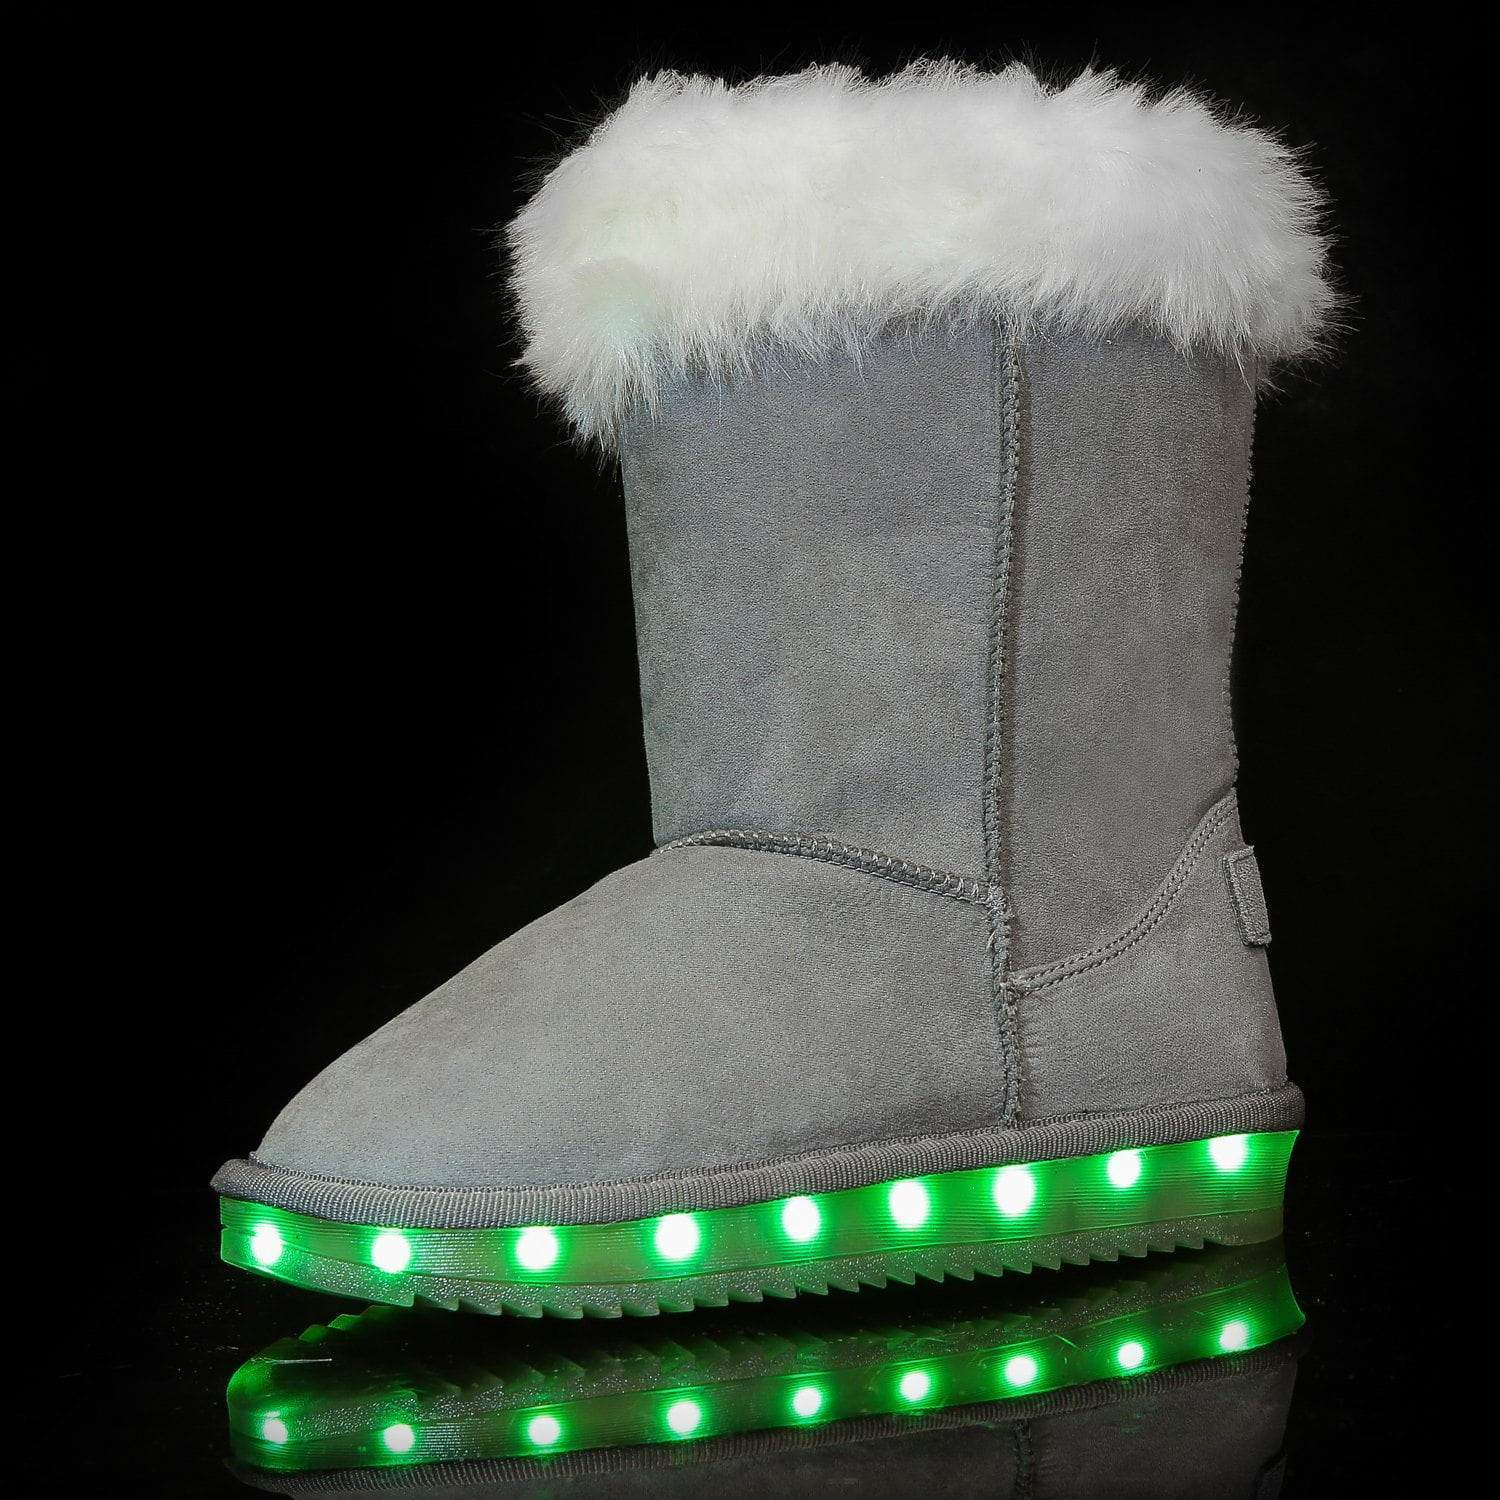 Flashez LED Footwear - Infants Flash Wear Grey Calf Boots